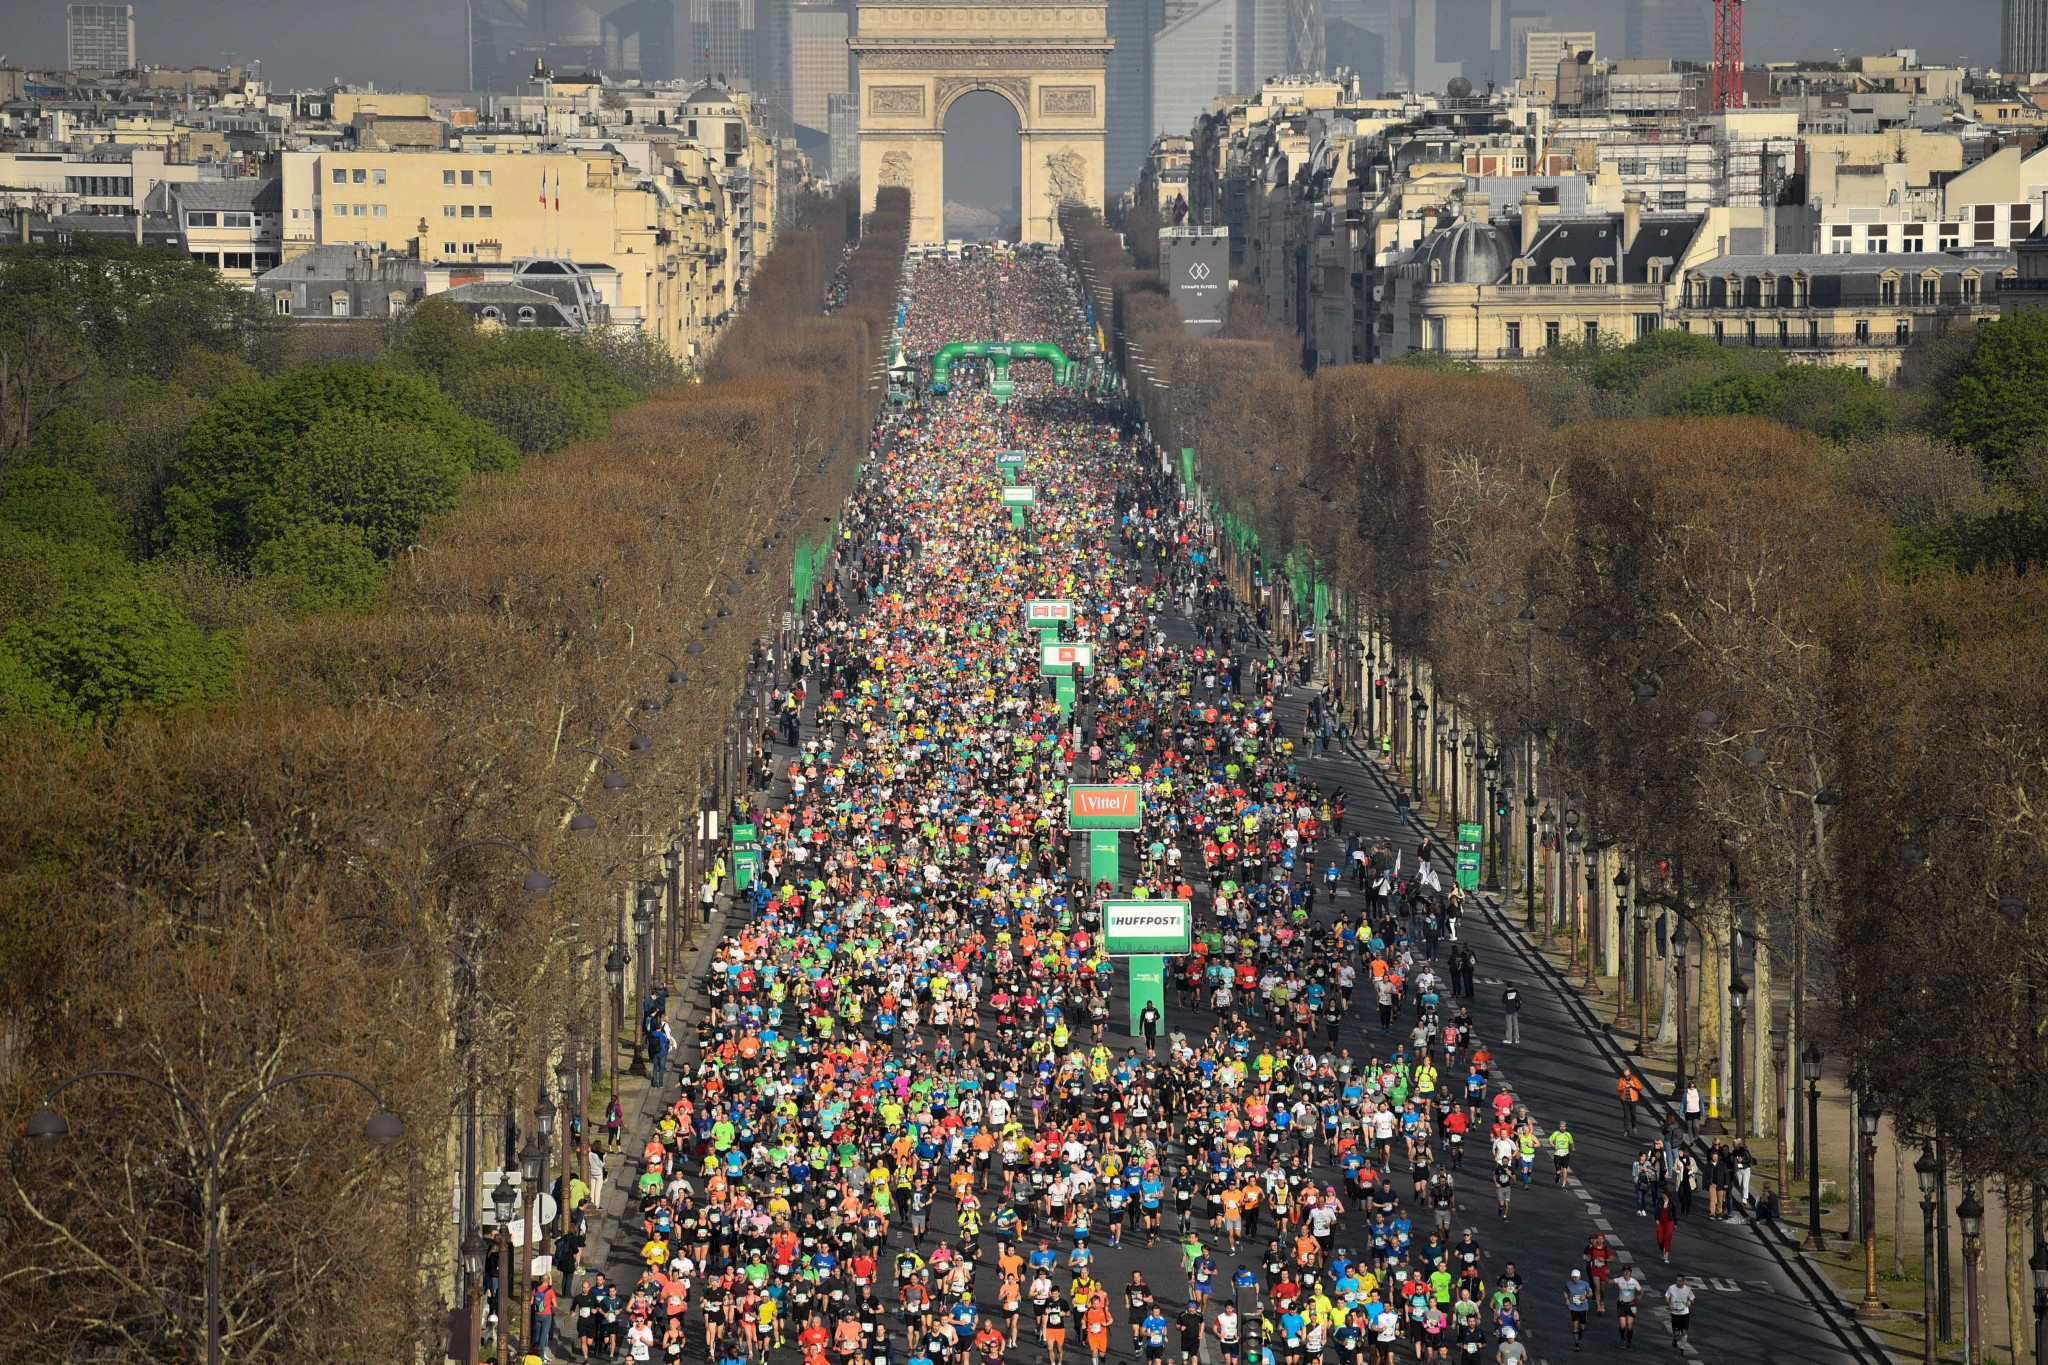 Paris holds a marathon every year but it typically takes place in April when temperatures are cooler ©Getty Images